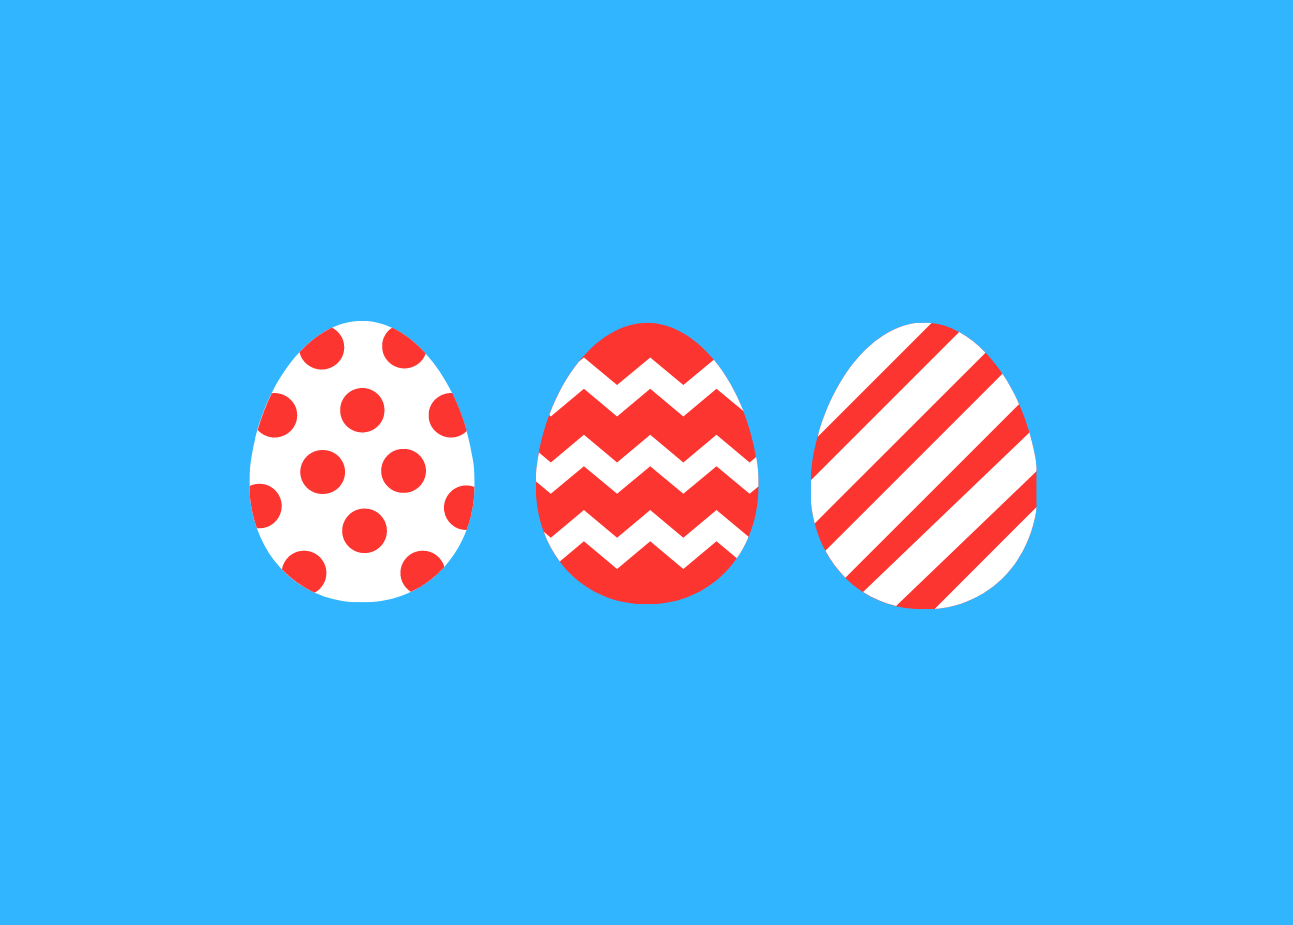 3 easter eggs in white and red design with a blue background